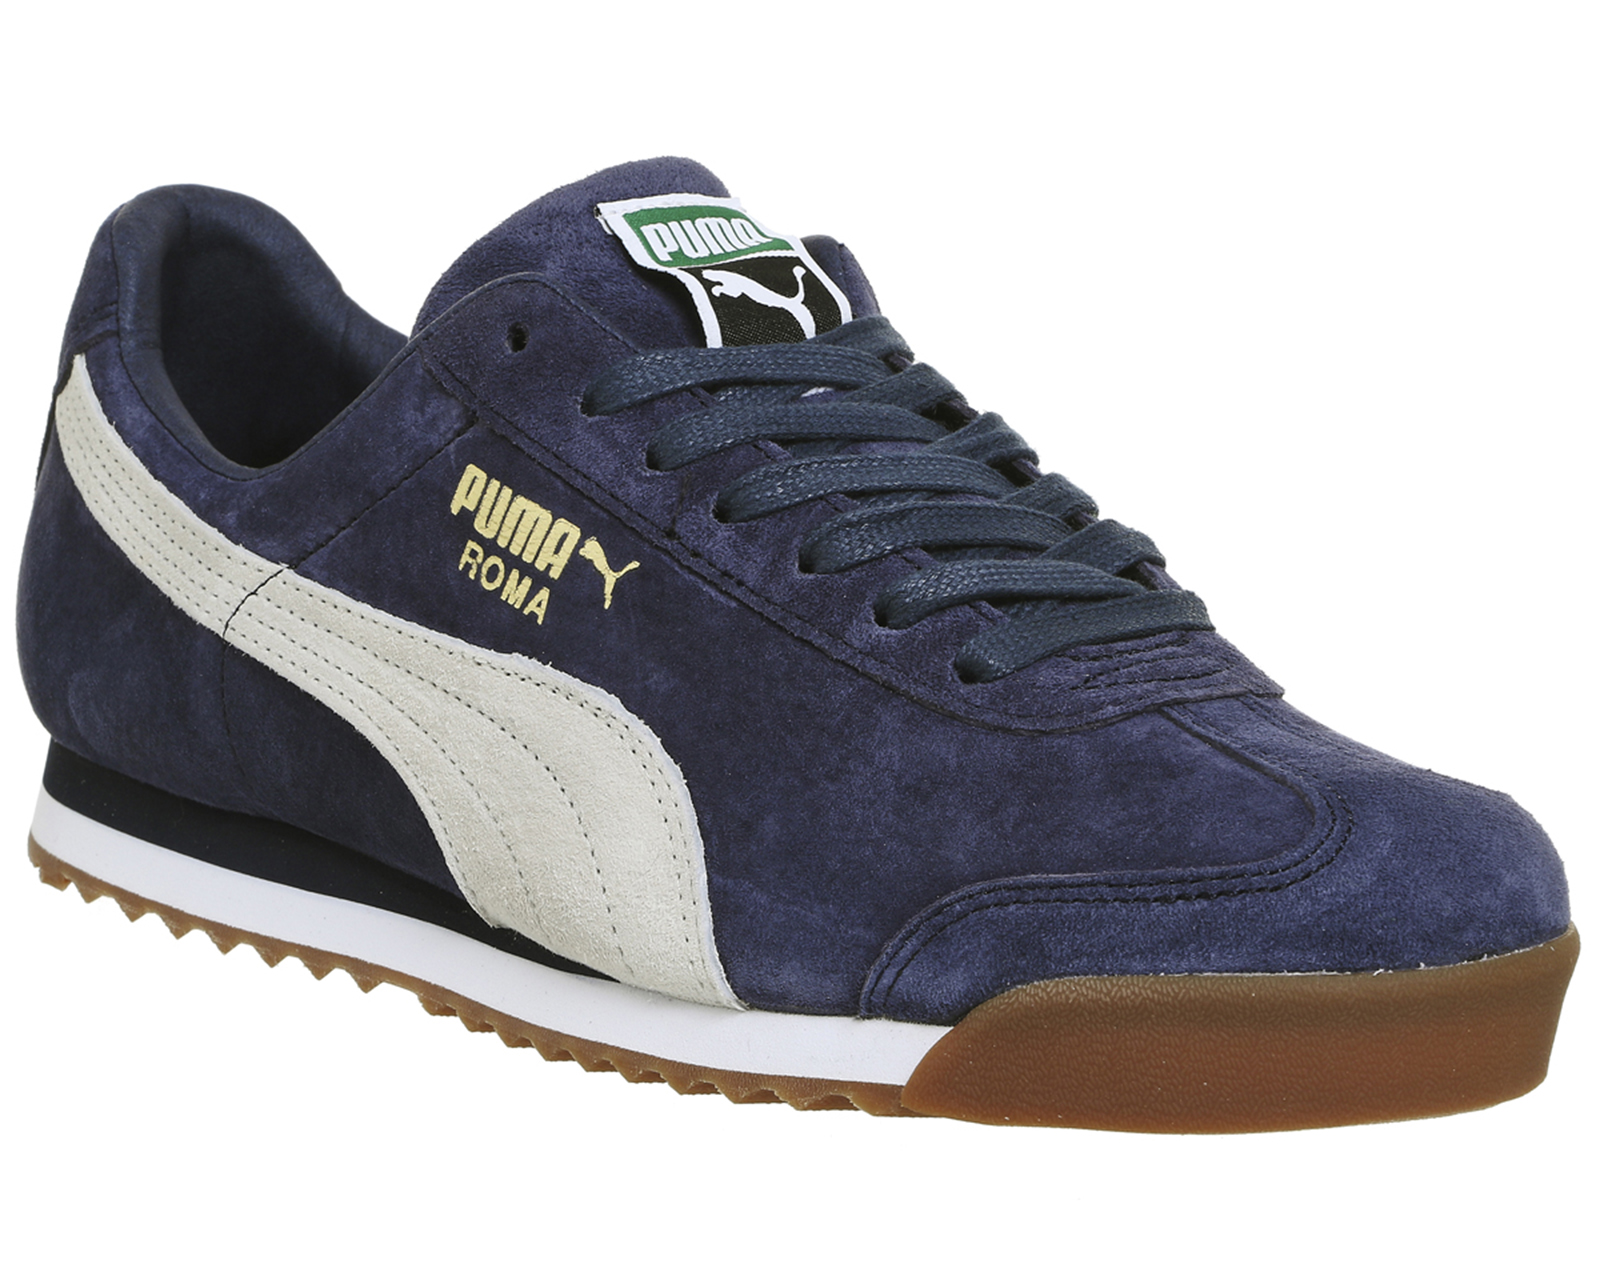 Puma Running Shoes Uk